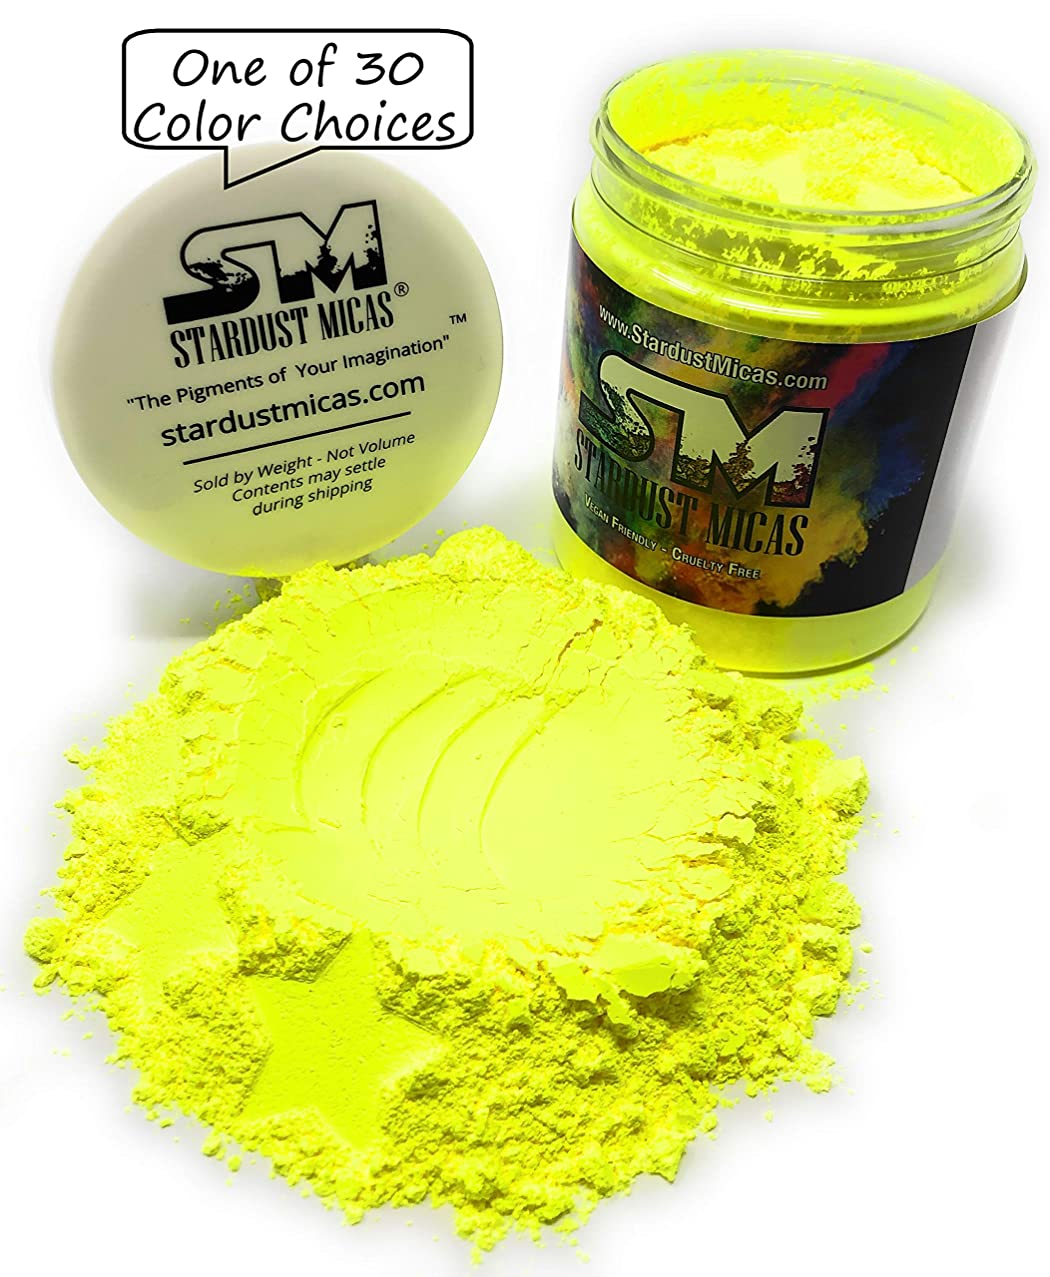 Stardust Micas Neon Pigment Powder for Soap Making, Slime Coloring, Epoxy Resin, Bright True Fluorescent Colors Cold Process Stable Matte Dye Colorant Electric Yellow